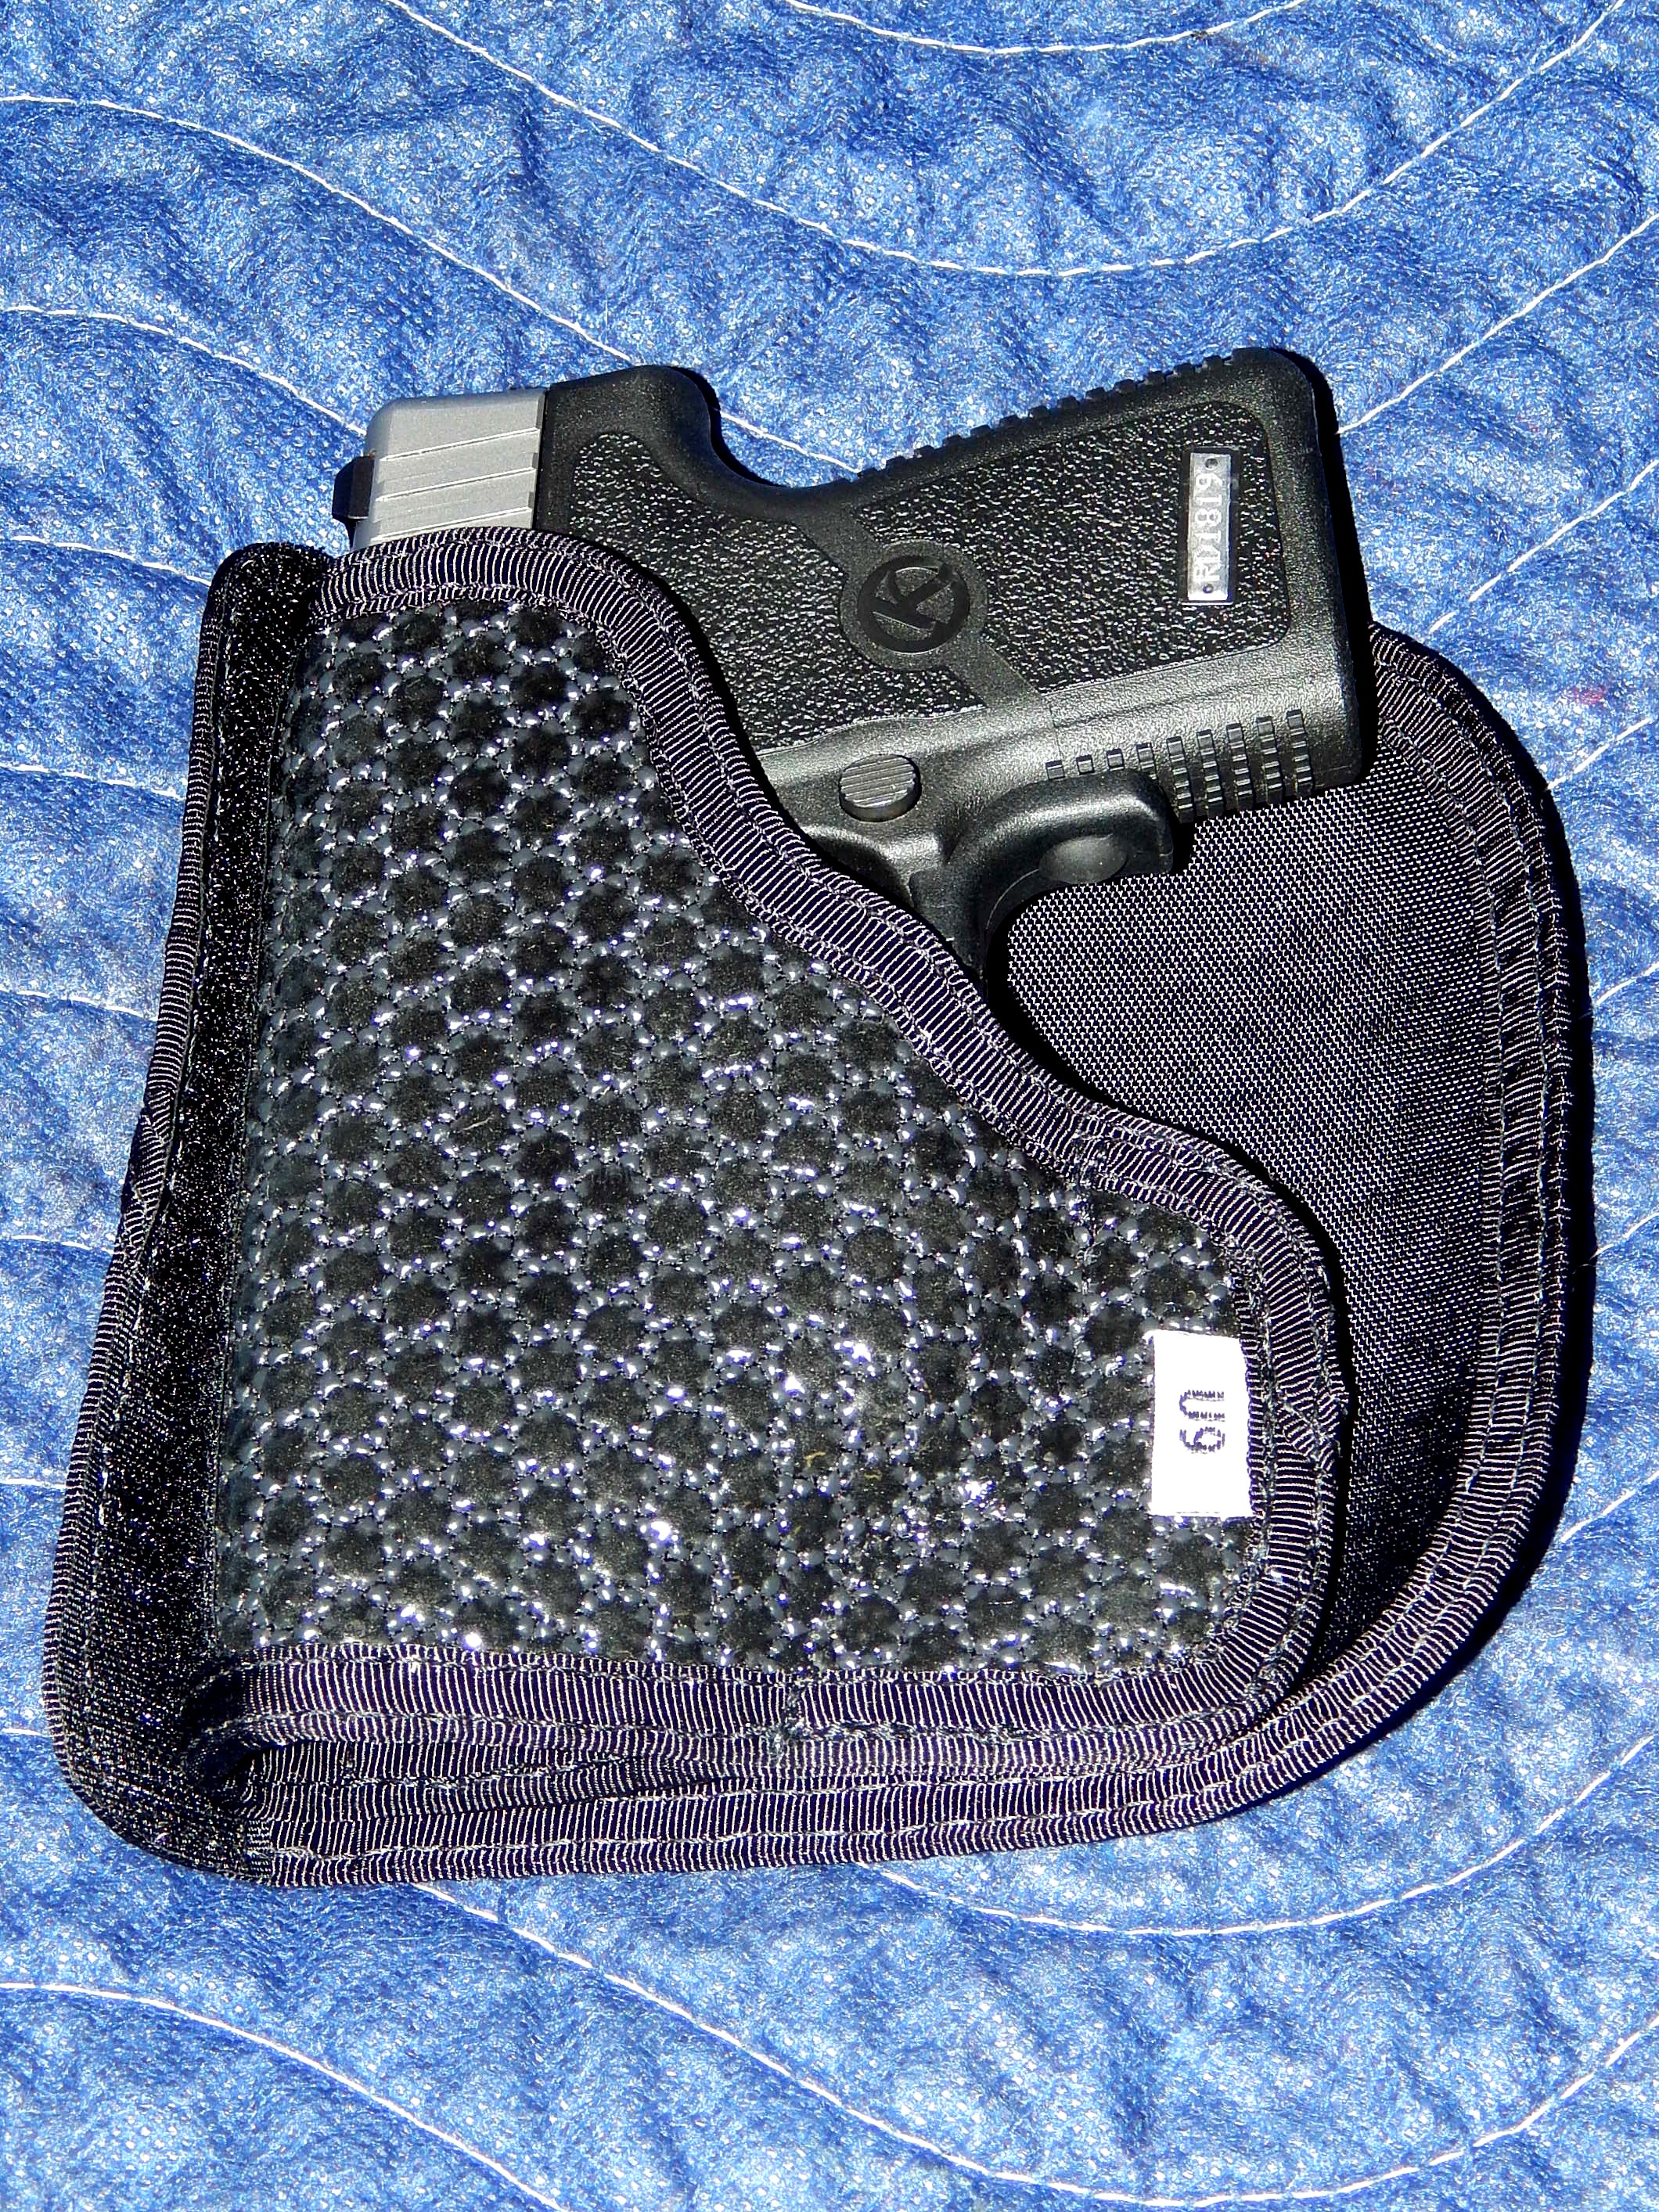 What handgun have you carried the most in the last 30 days? update page 12-5drclcs.jpg